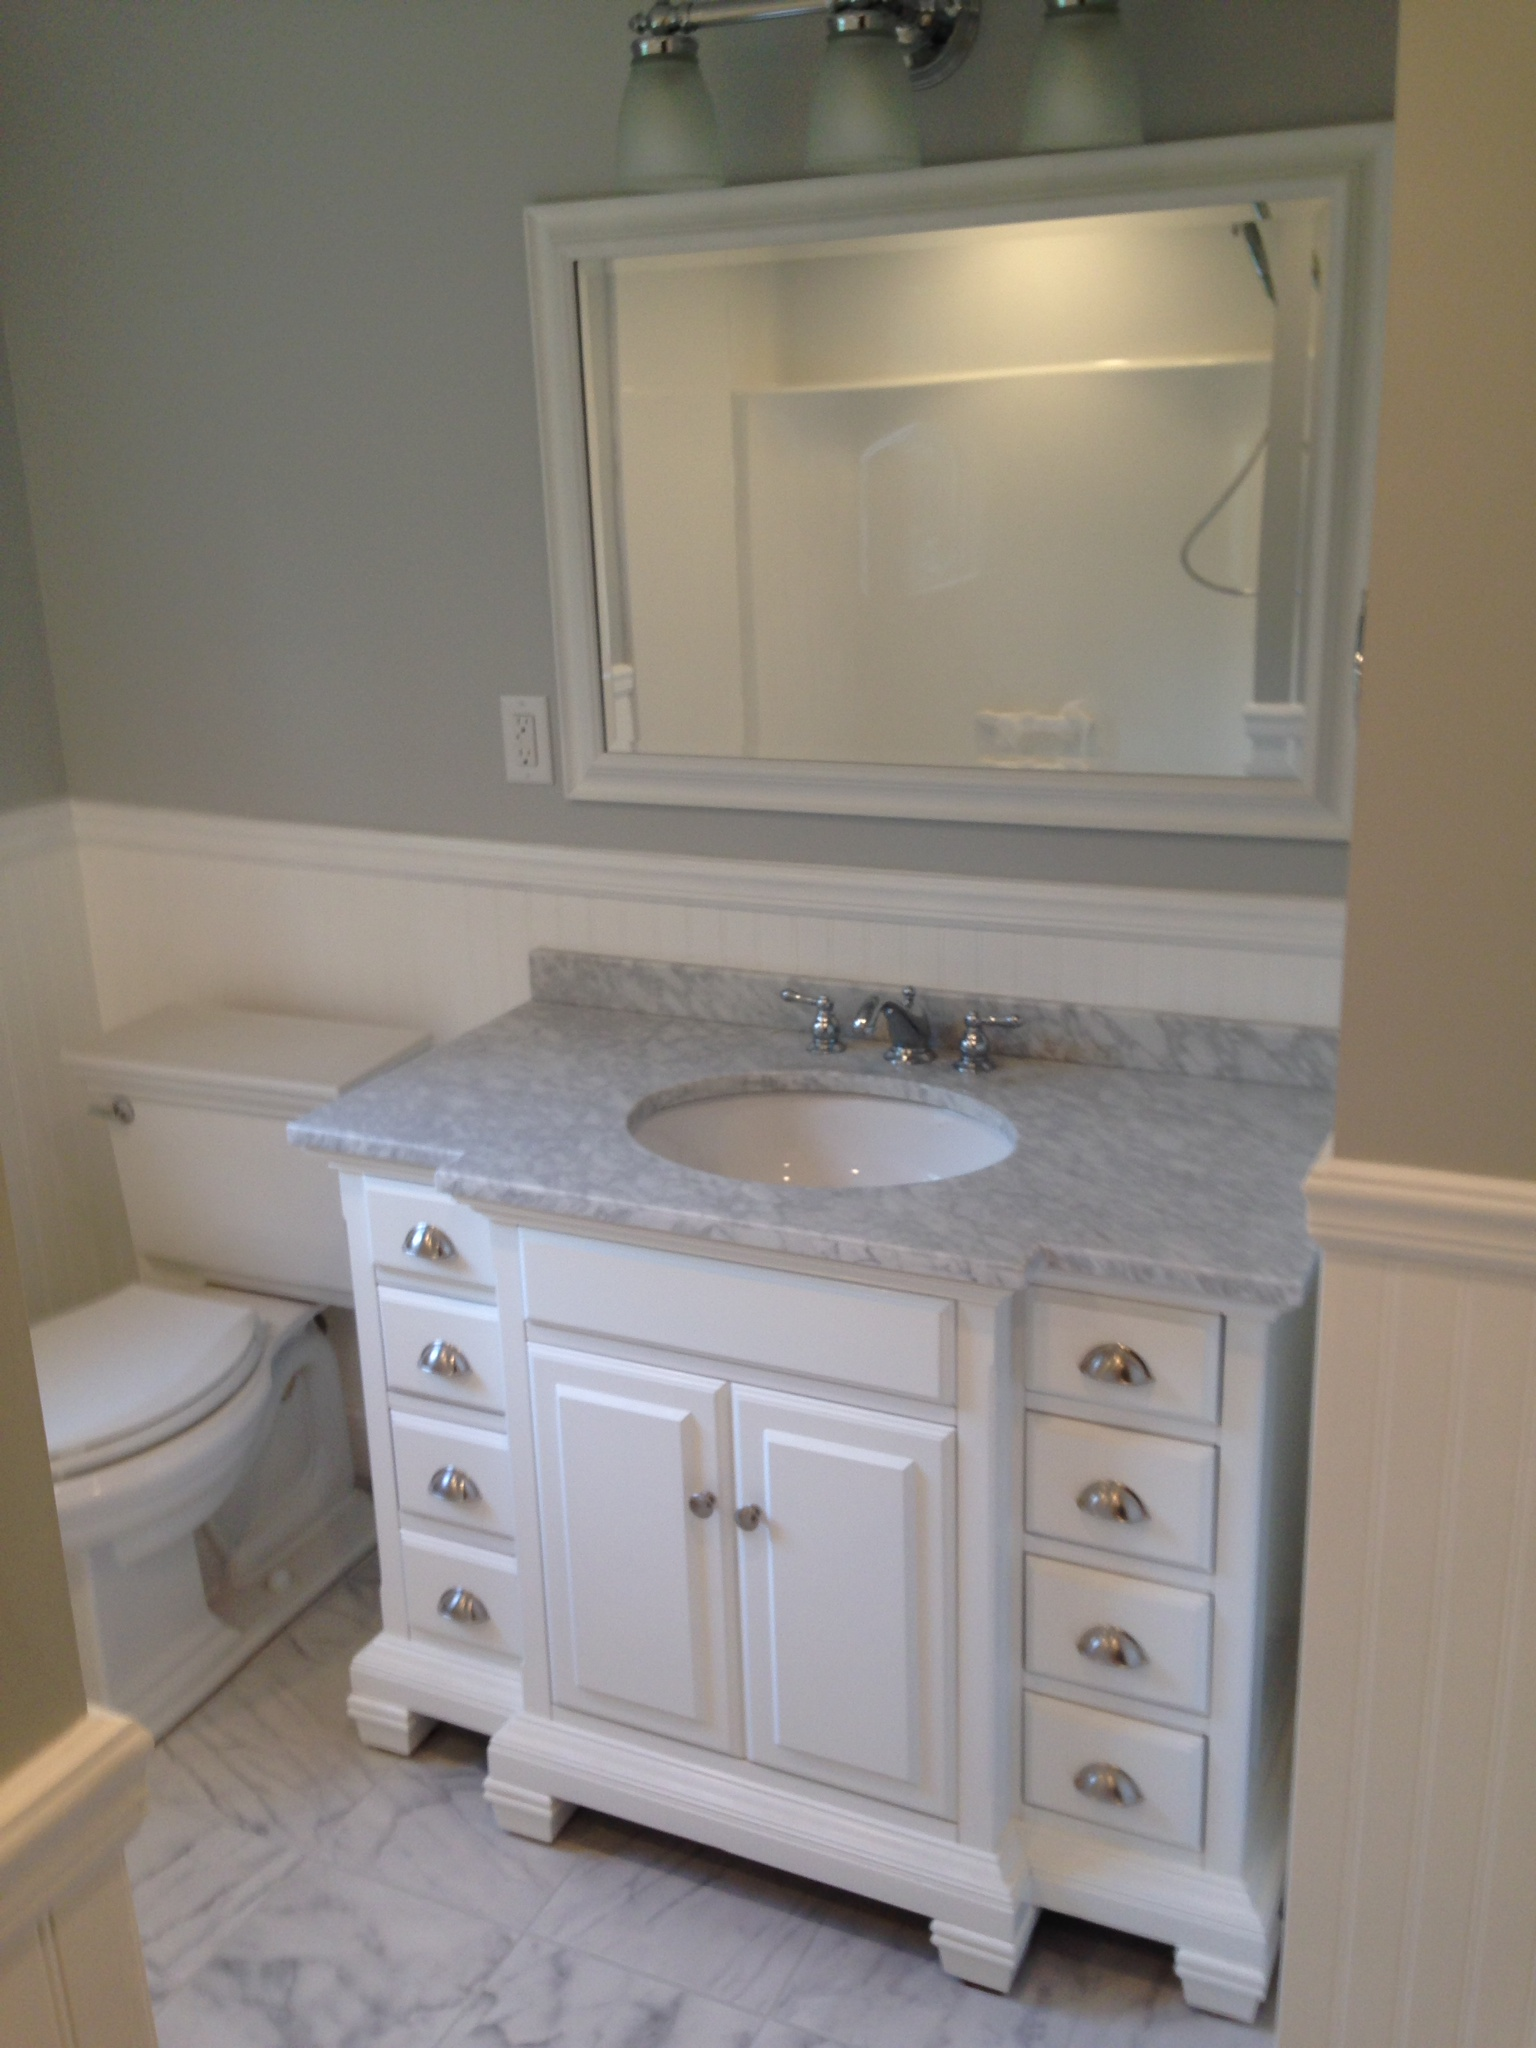 Scituate Handyman The Handyman Service - Handyman bathroom remodel